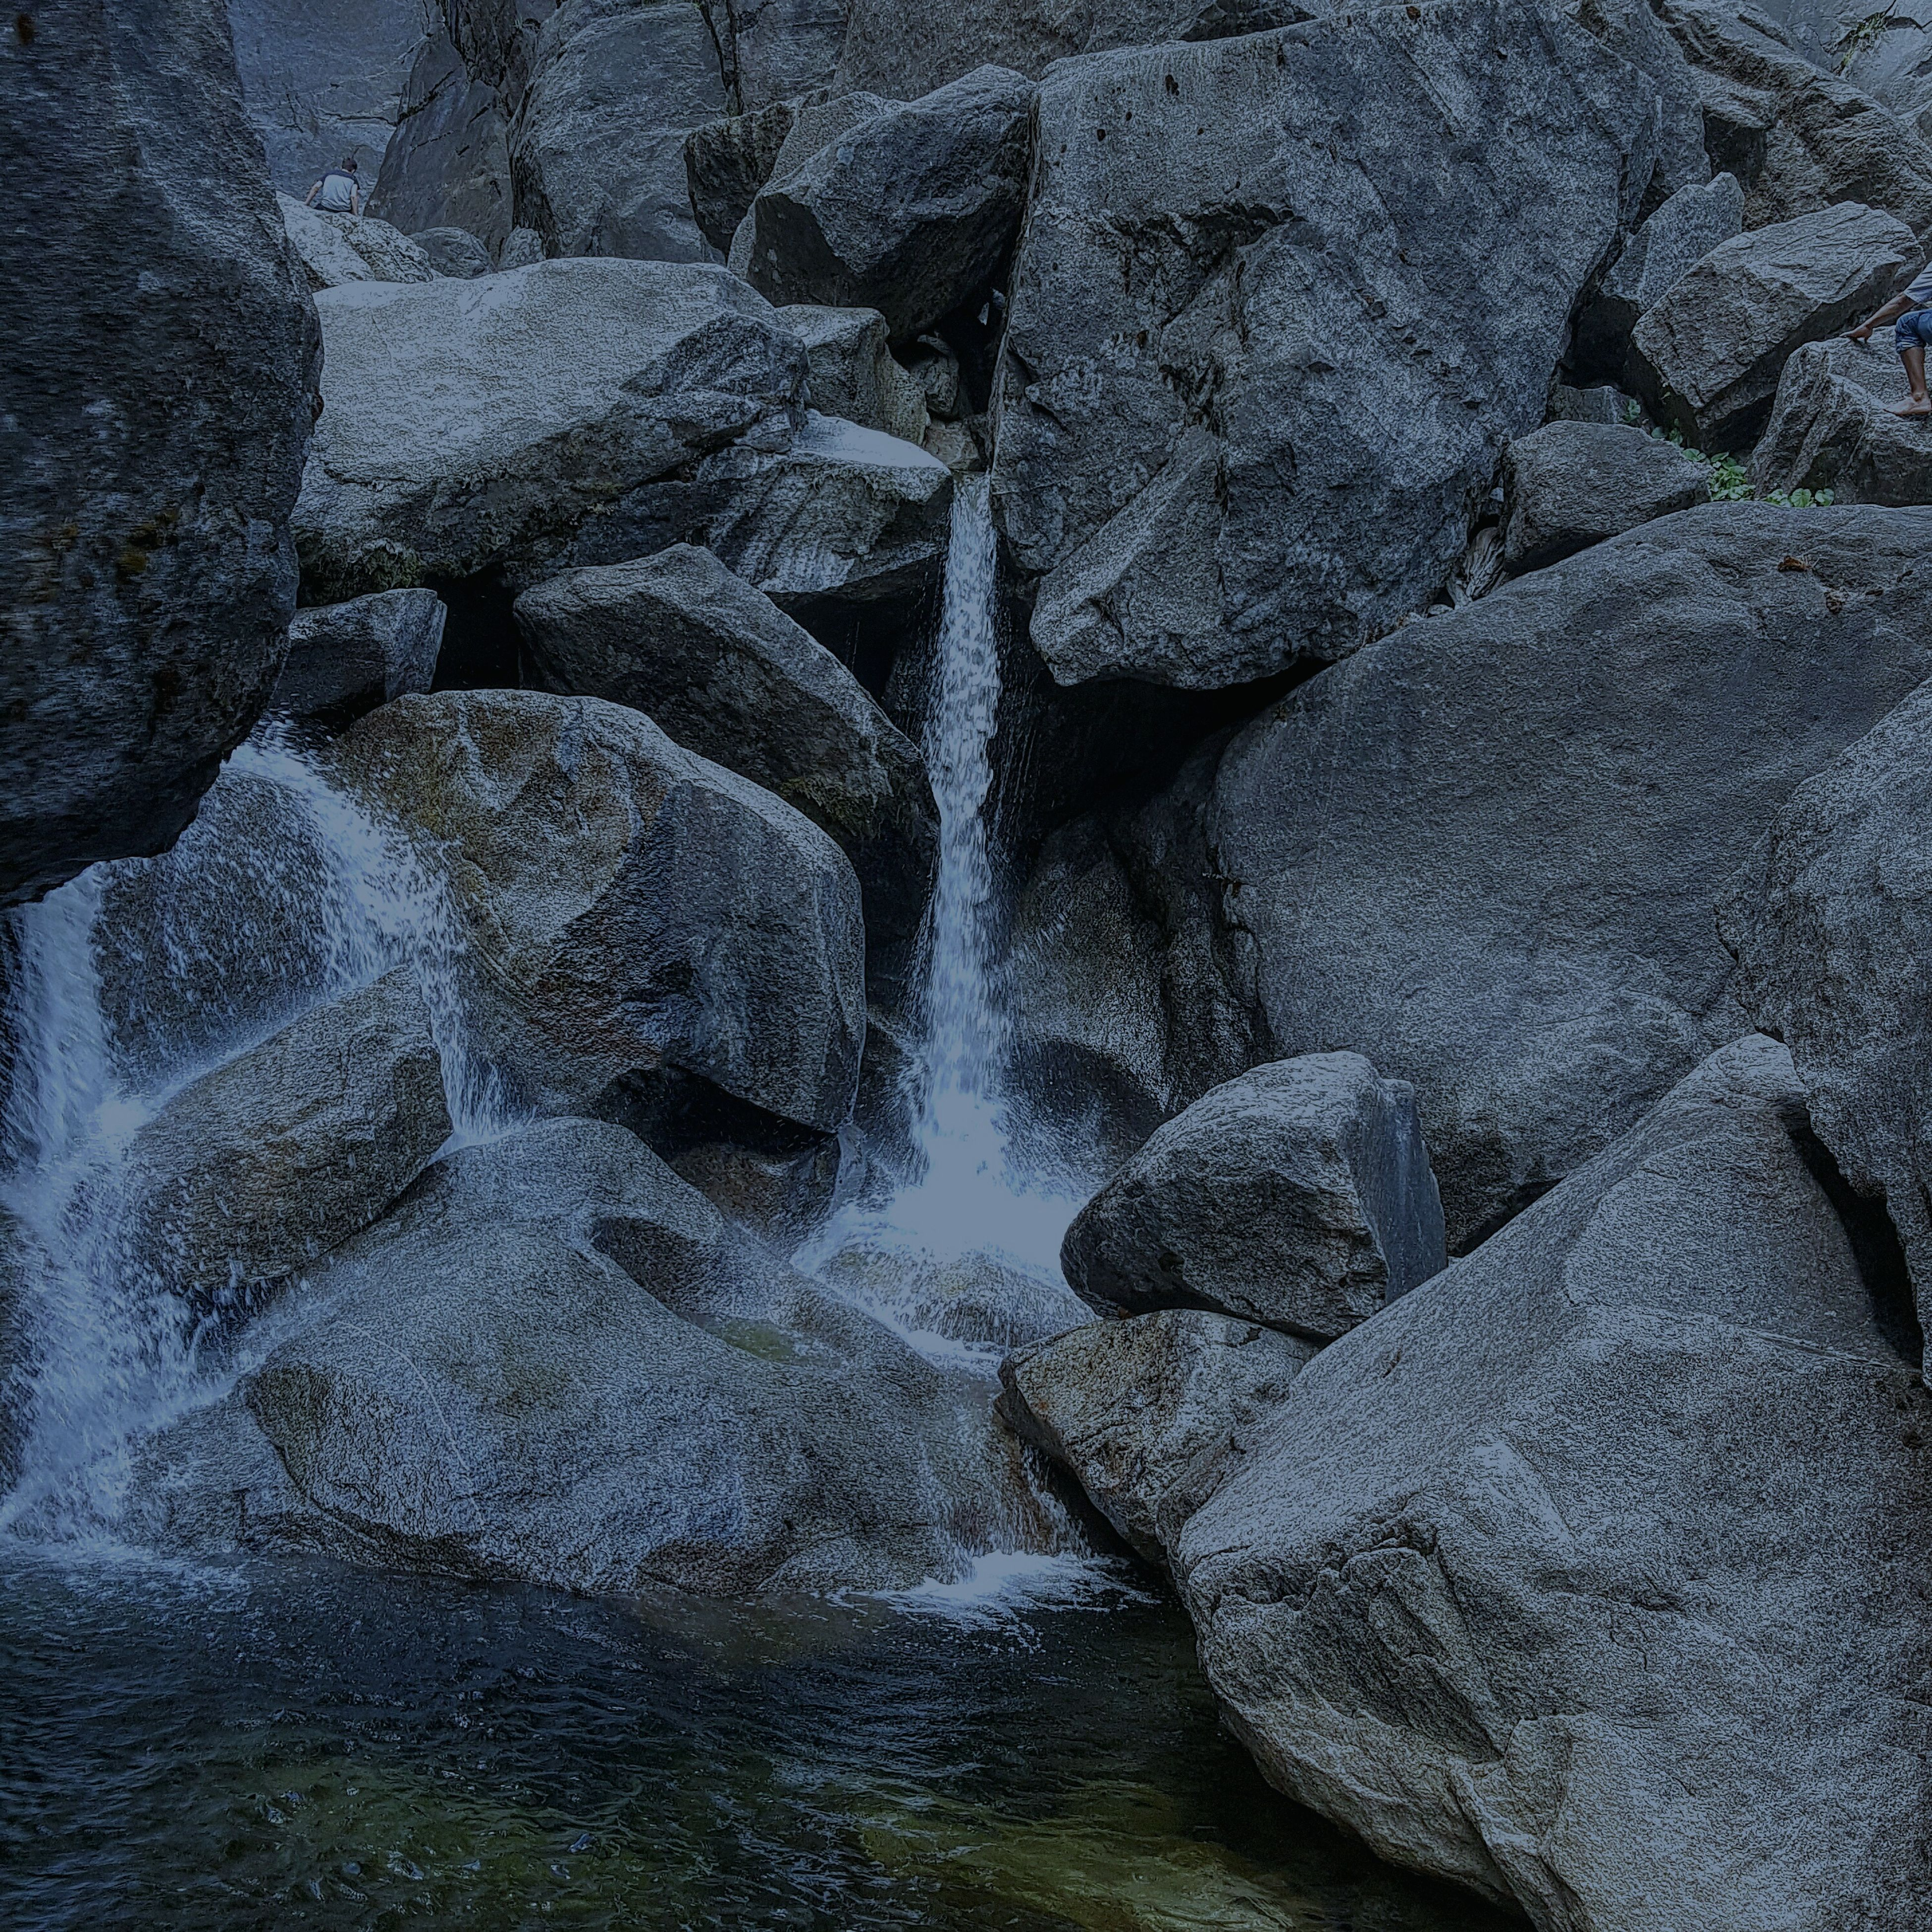 water, rock - object, nature, high angle view, beauty in nature, flowing water, stone - object, waterfront, day, rock, tranquility, flowing, river, outdoors, no people, rock formation, motion, stream, scenics, stone